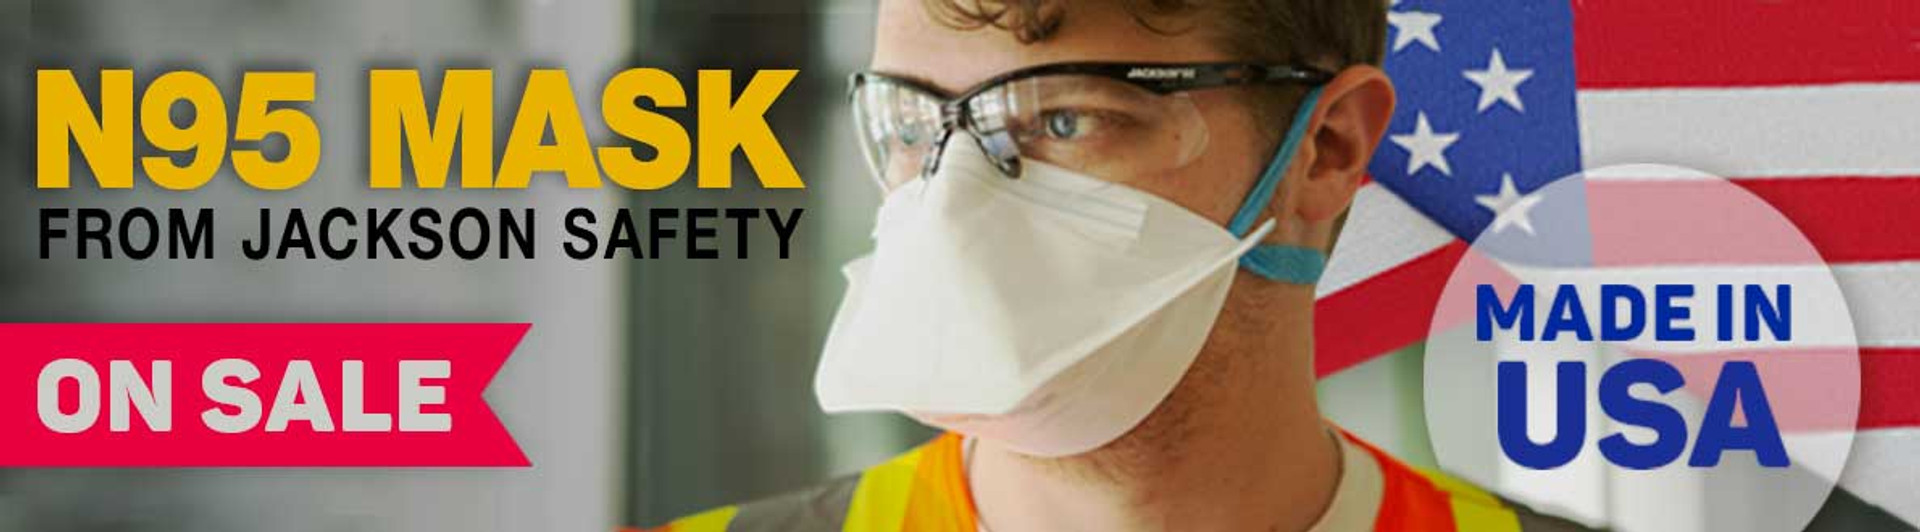 N95 Mask from Jackson Safety On Sale